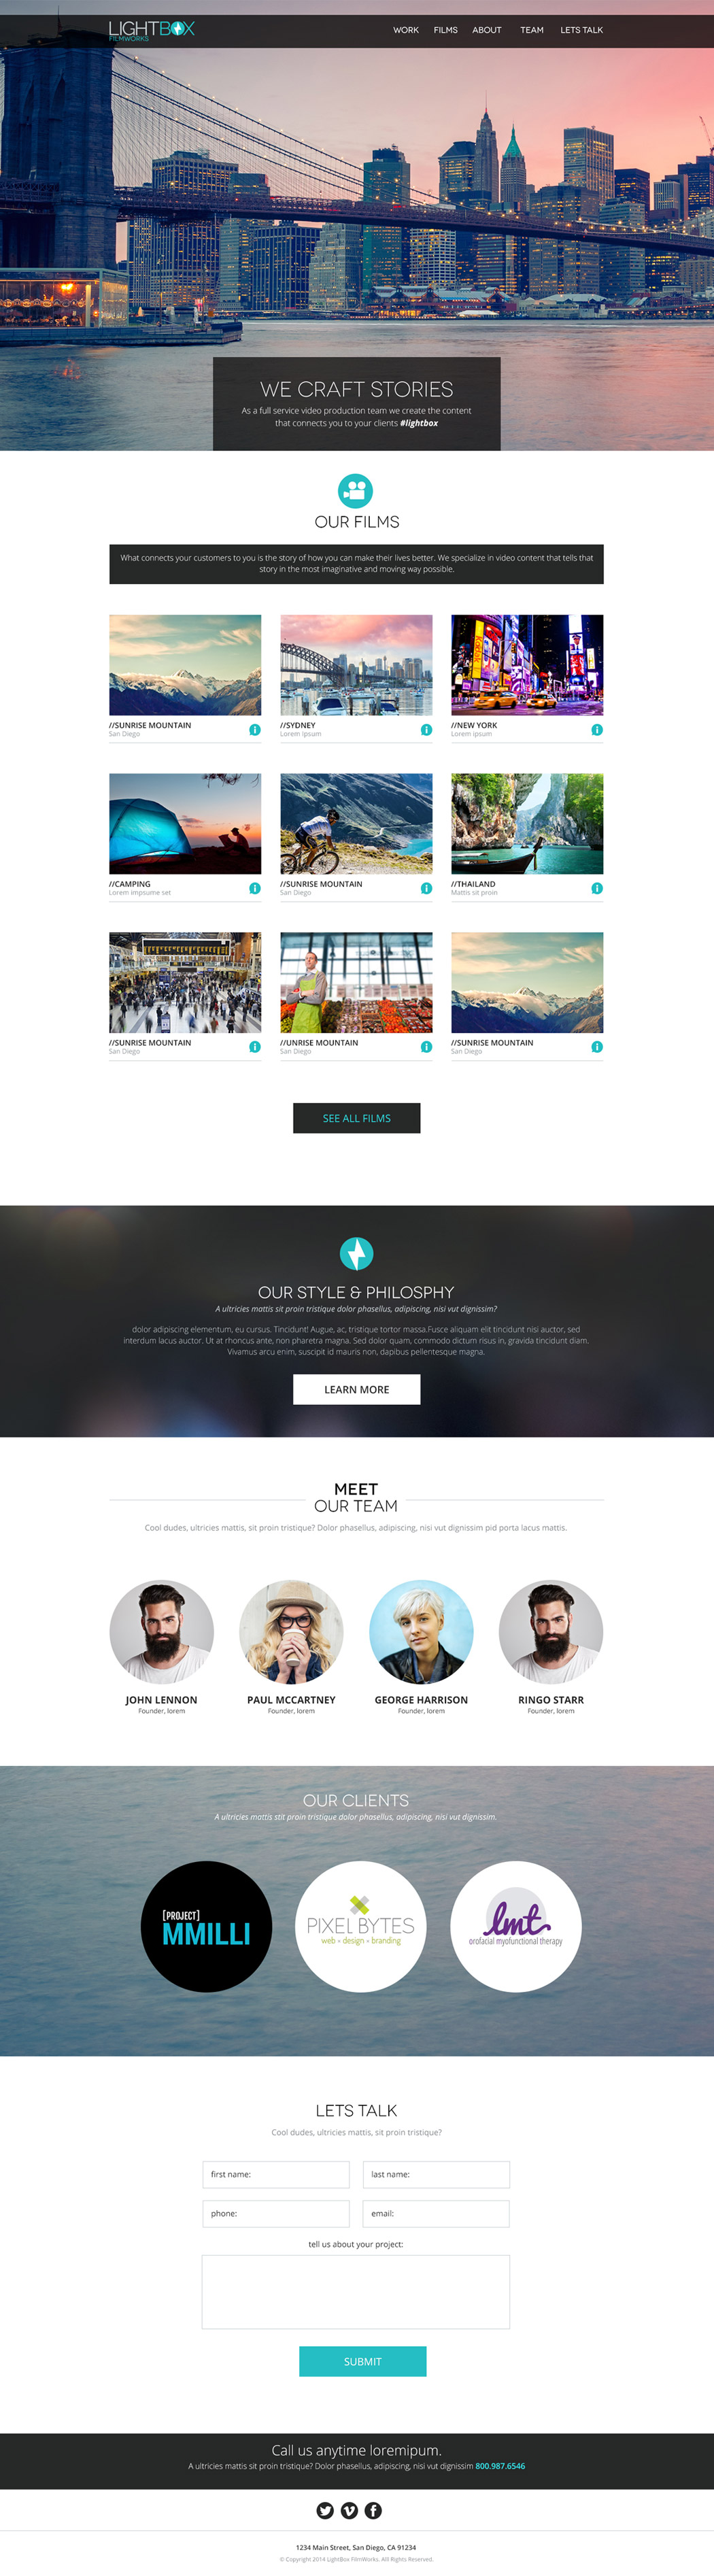 San Diego Website Design - Lightbox Filmworks